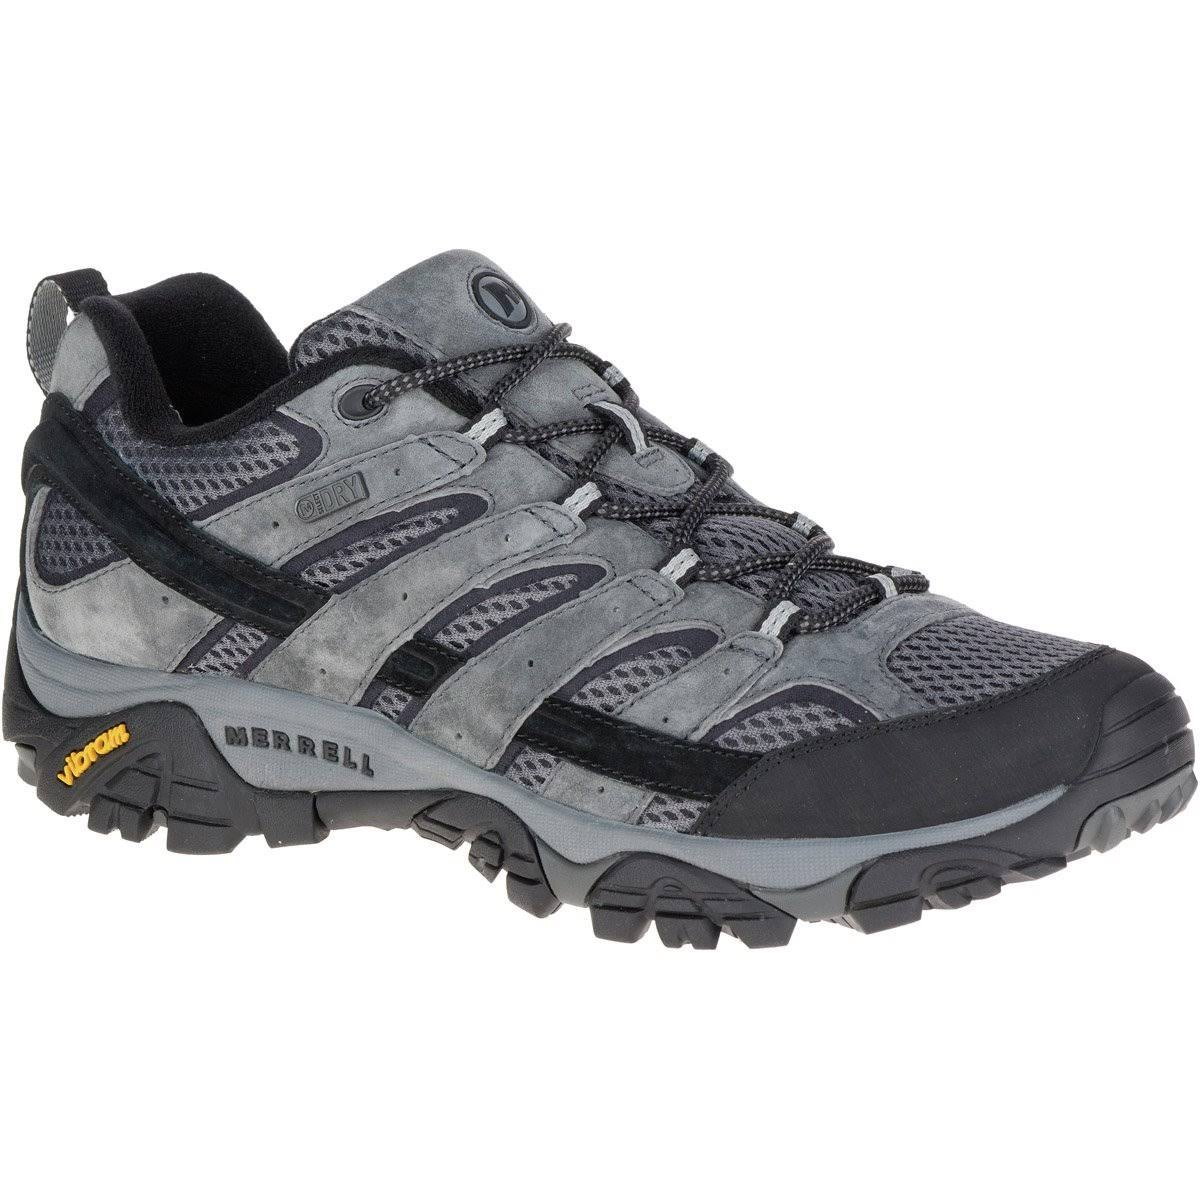 Merrell Men's Moab 2 Waterproof Hiking Shoes - Granite, 9 M US